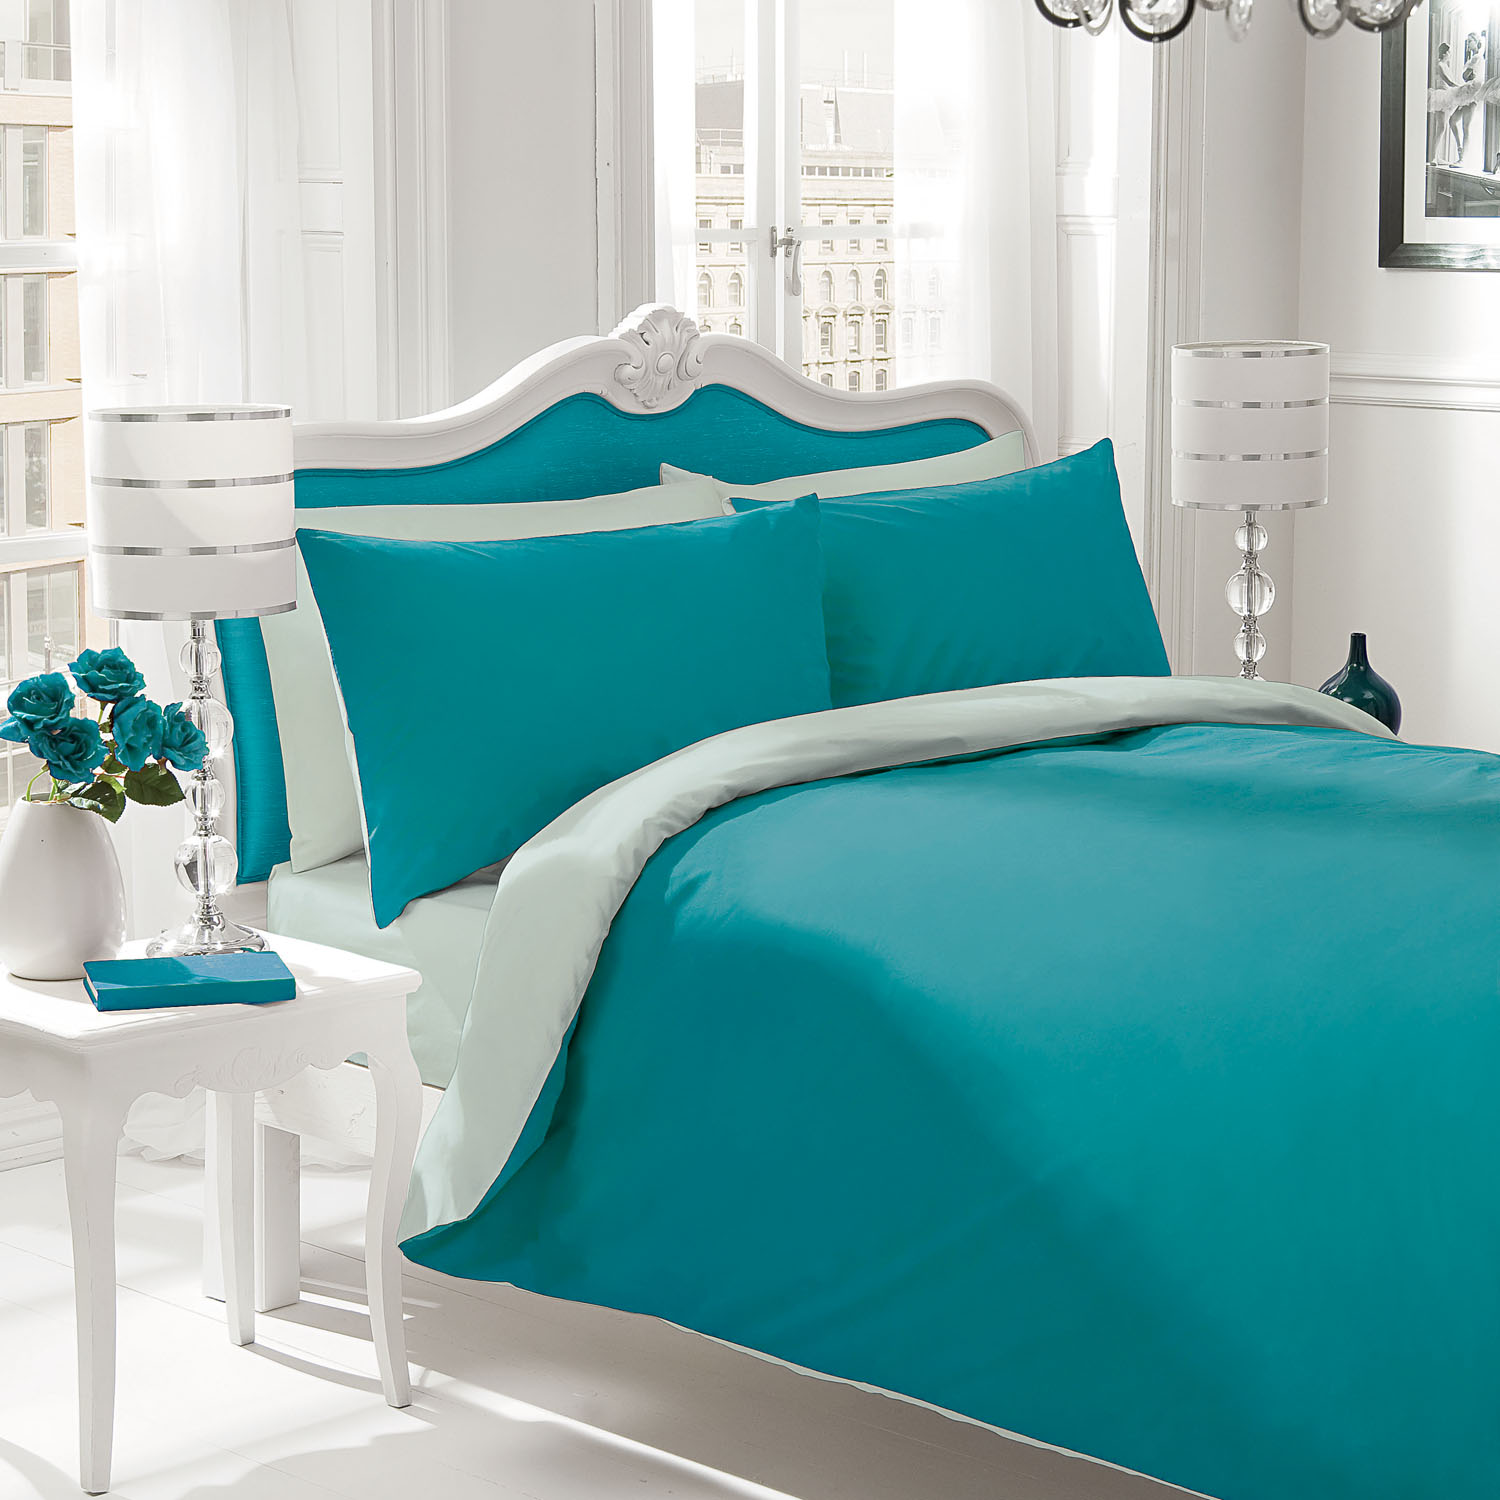 Teal bed sets homesfeed for Teal bedroom